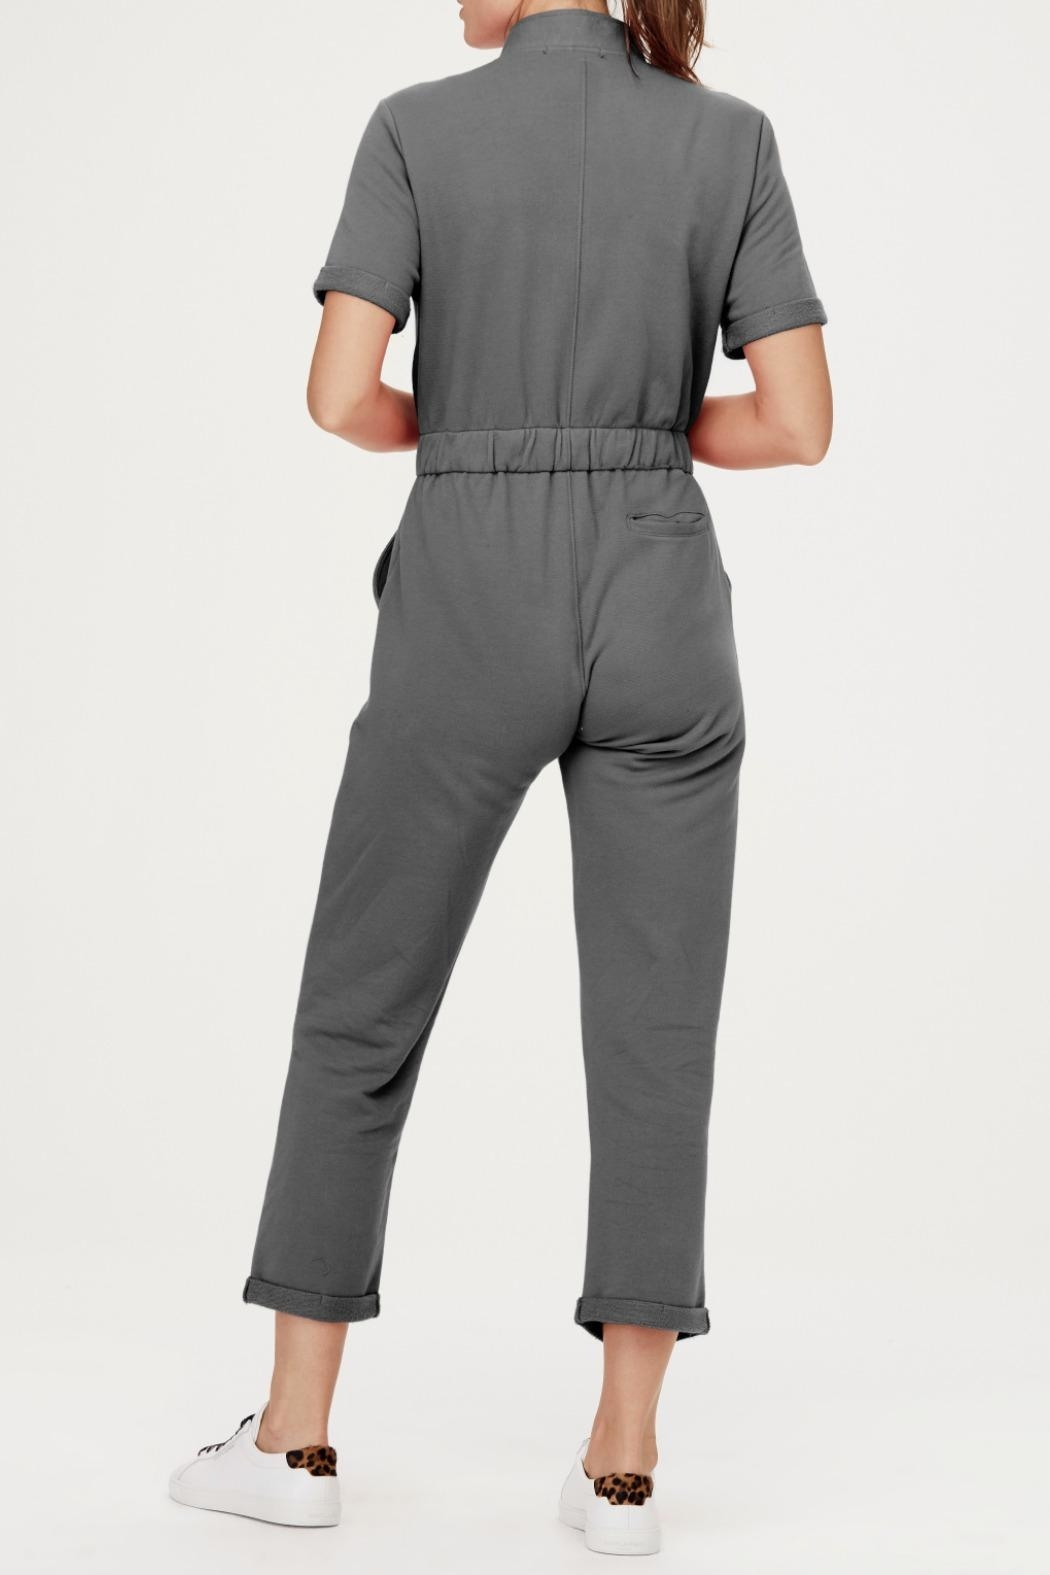 David Lerner New York Cassie Cargo Jumpsuit - Side Cropped Image